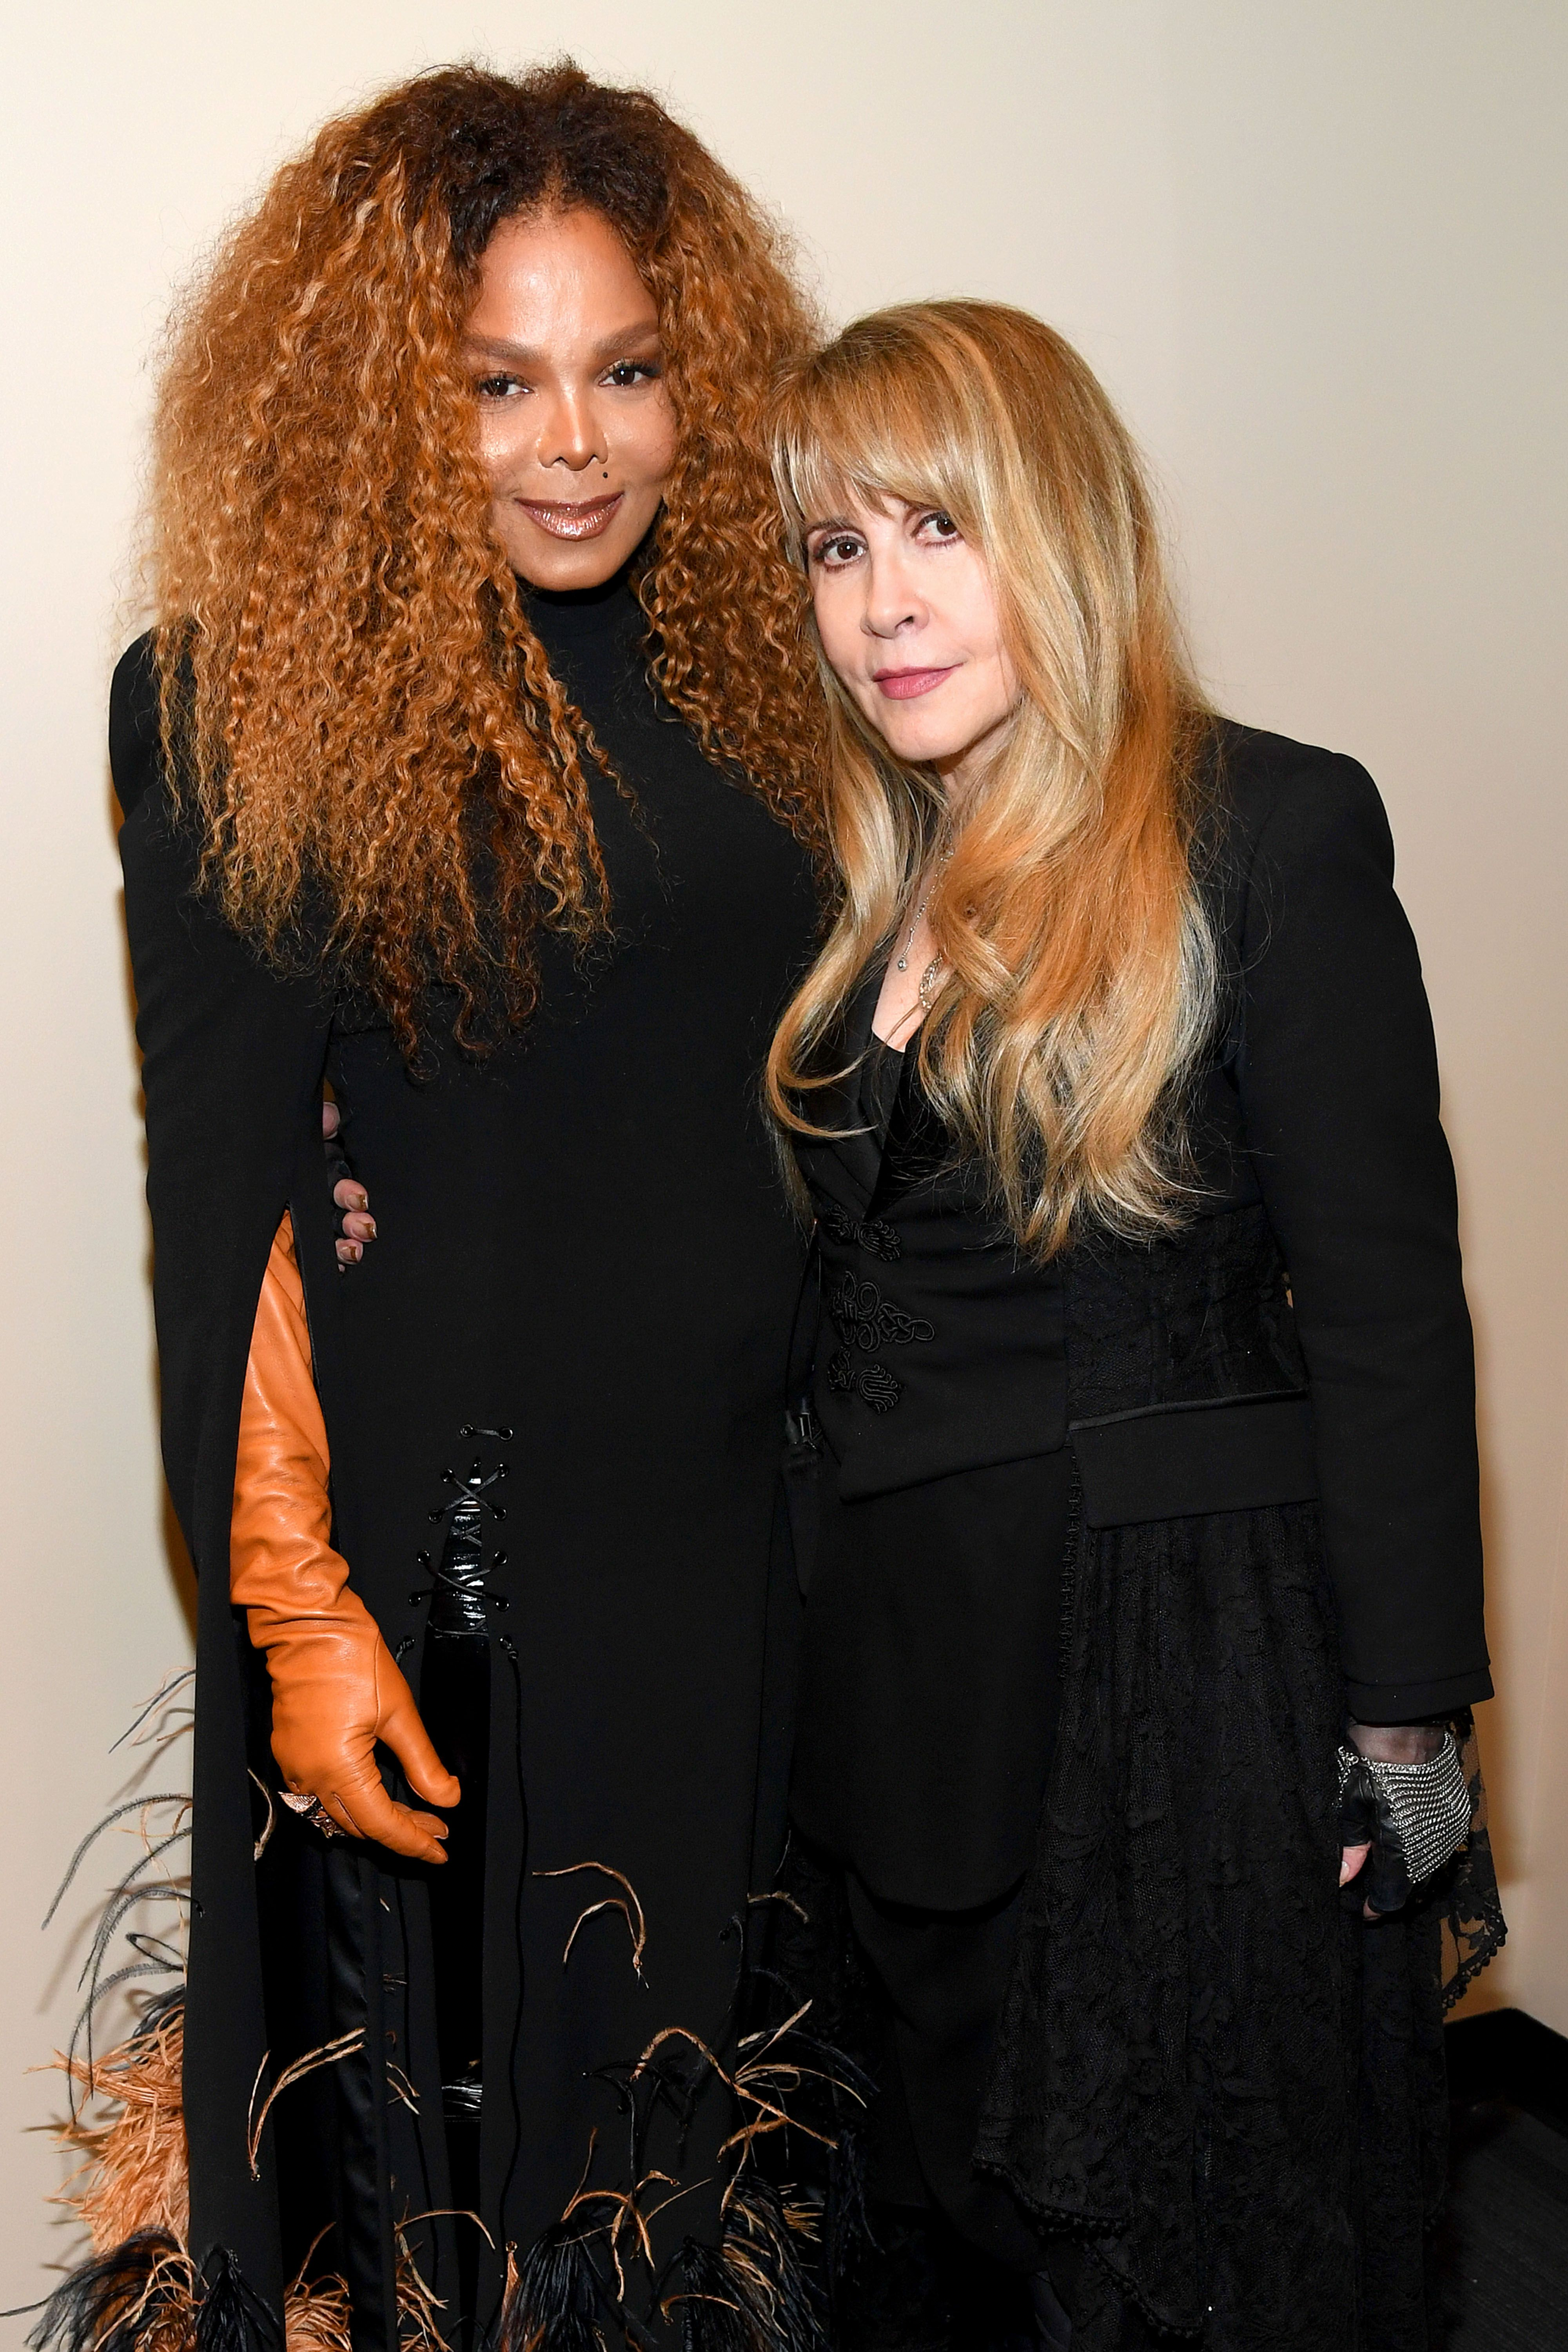 Stevie Nicks and Janet Jackson Were Inducted Into the Rock & Roll Hall of Fame